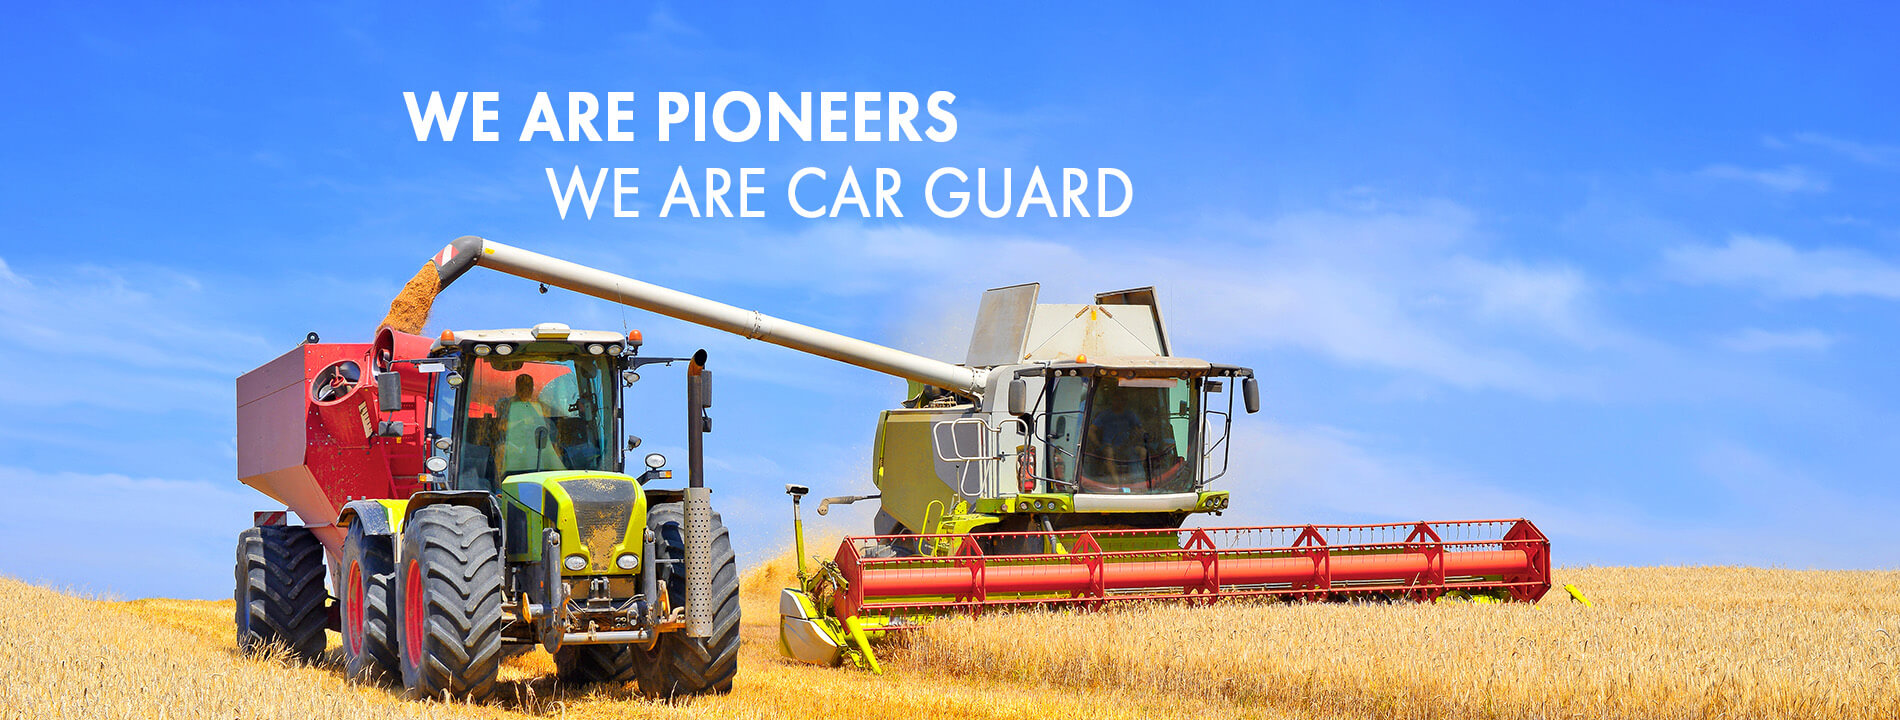 We are pioneers - We are Car Guard